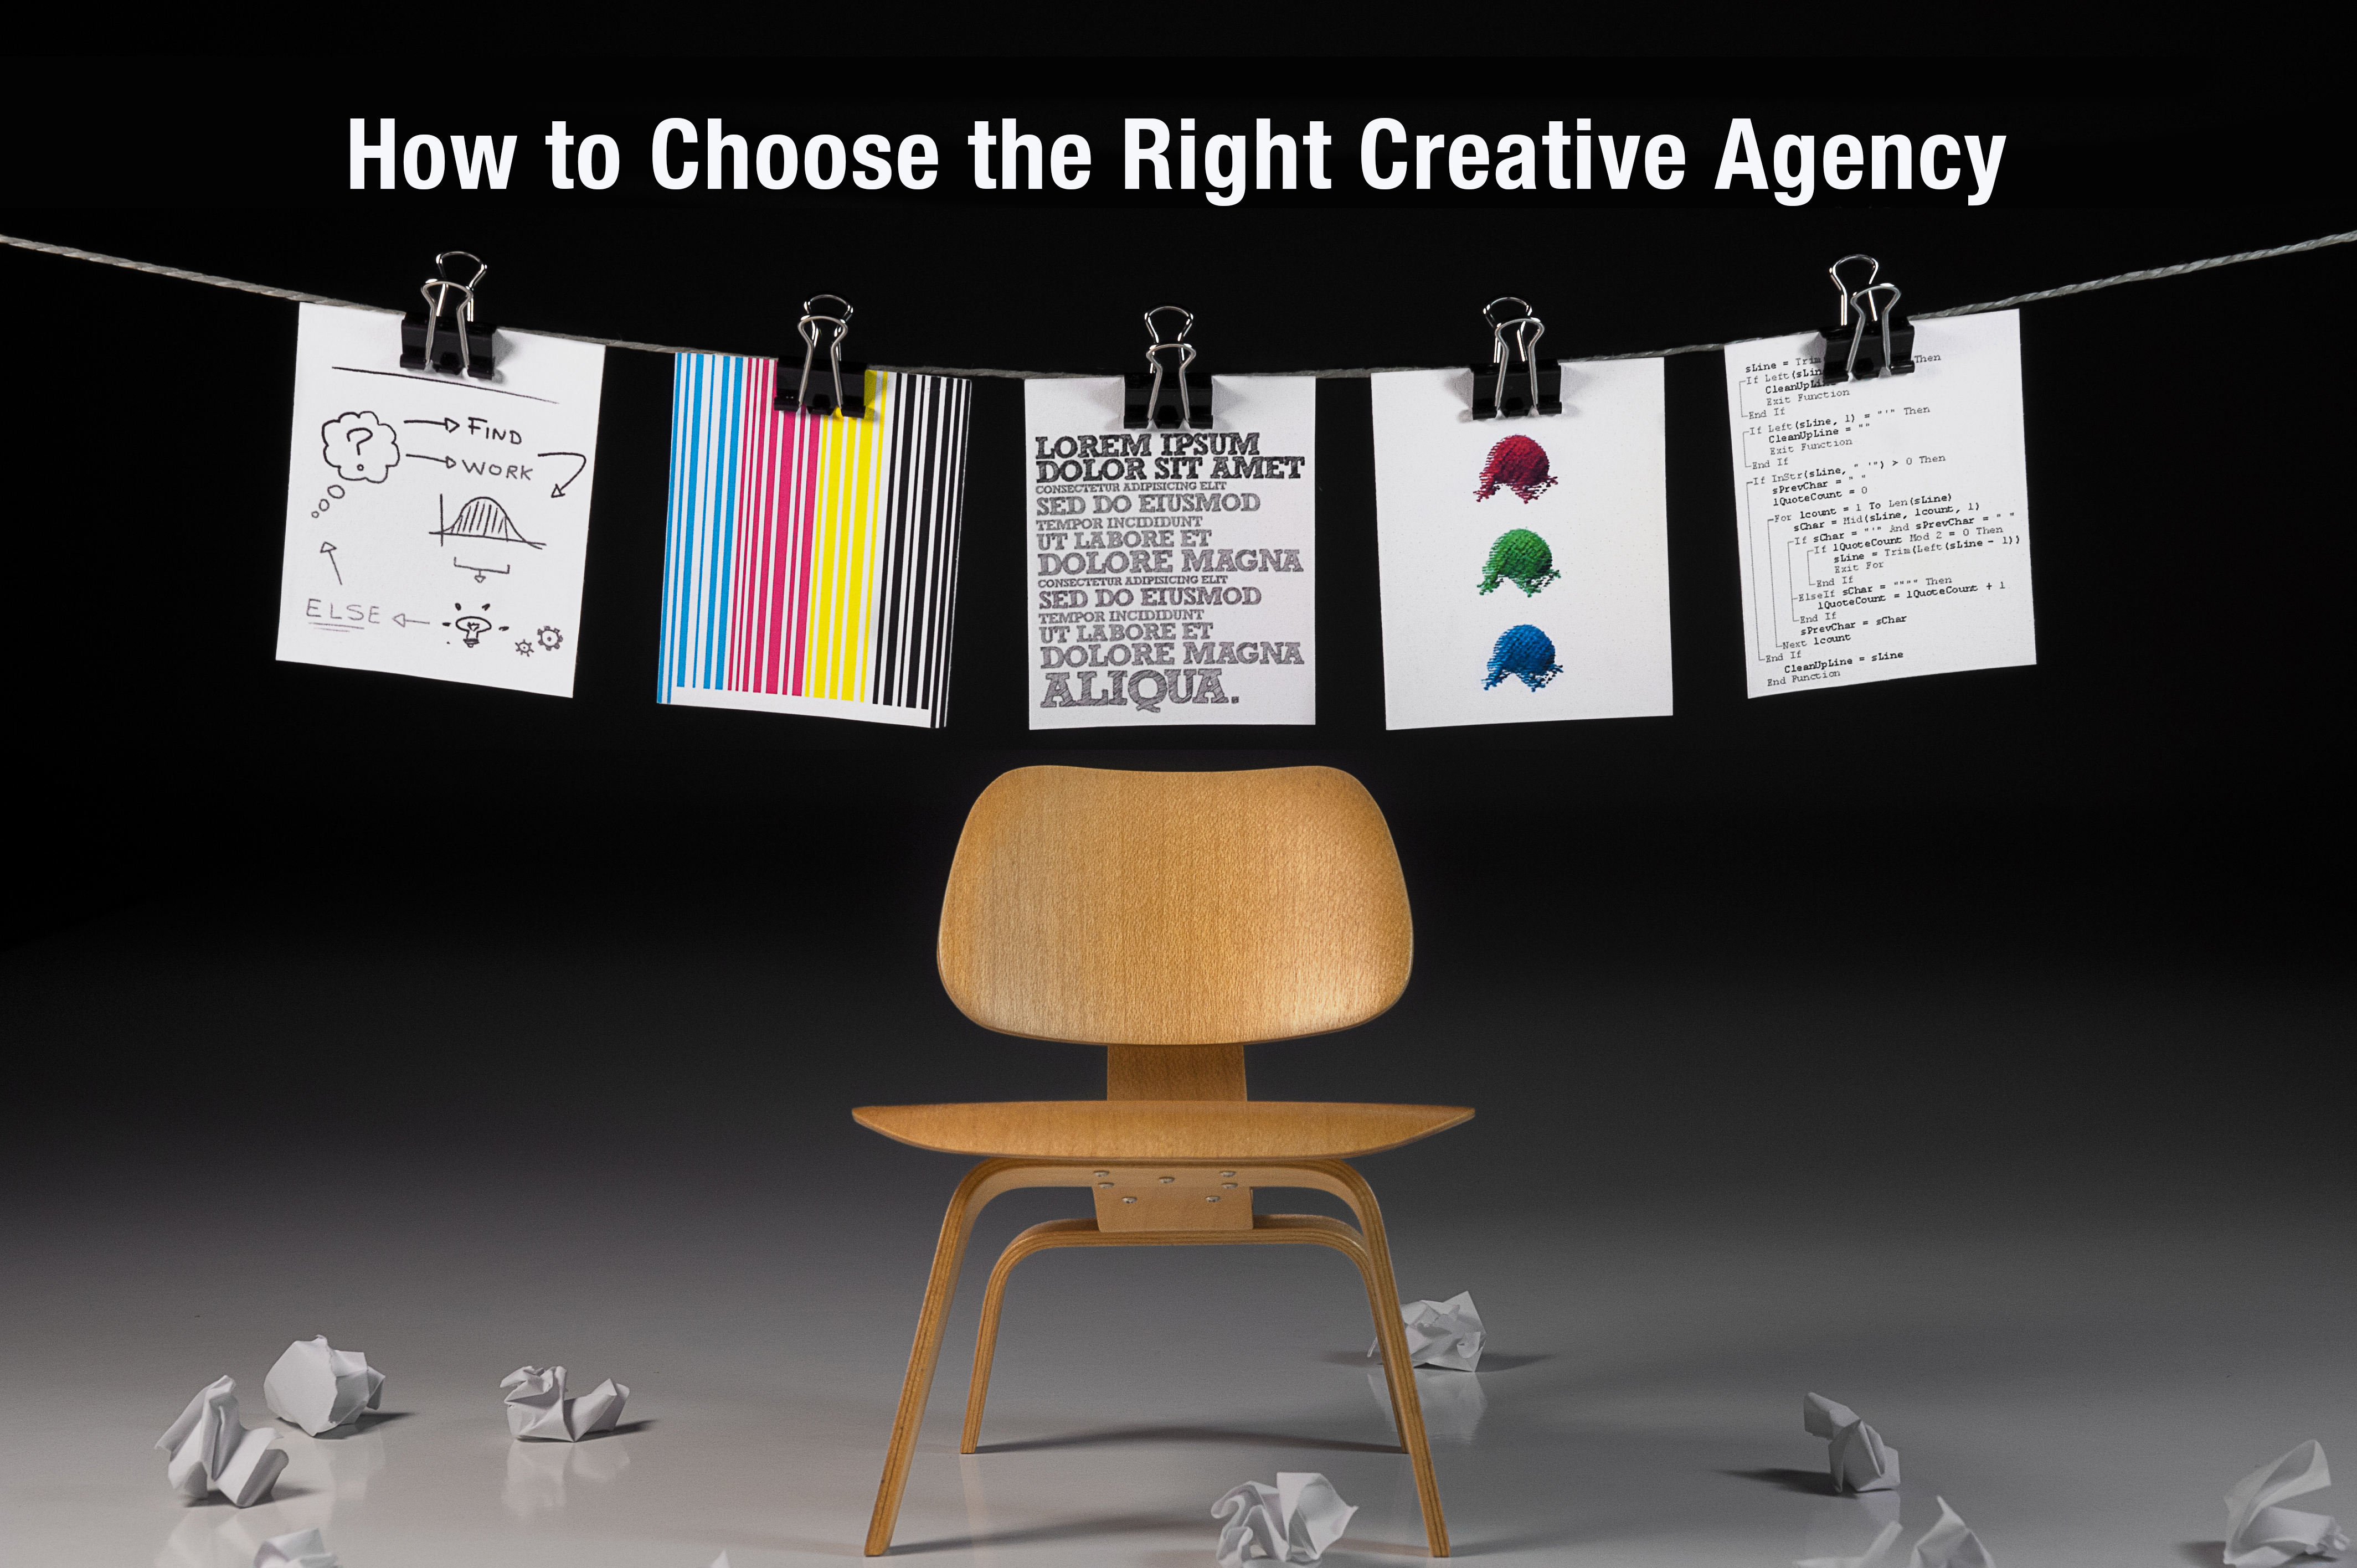 How to Choose the Right Creative Agency